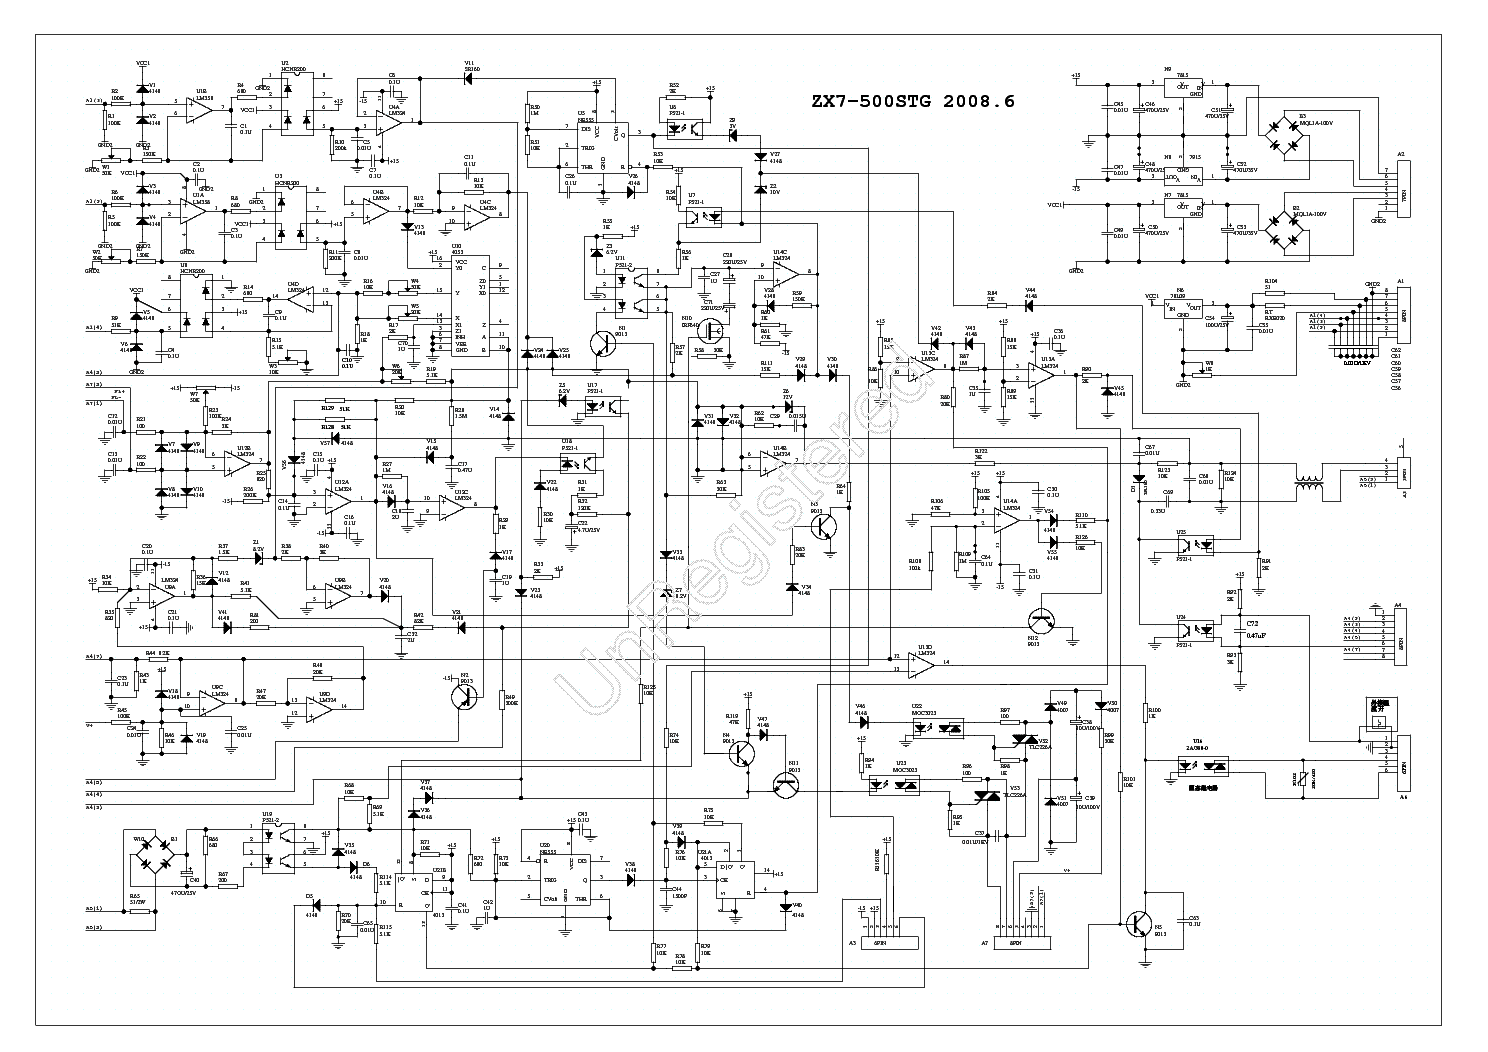 welding diagram pdf wiring diagram today inverter welding machine circuit diagram pdf mig welder wiring diagram [ 1488 x 1052 Pixel ]